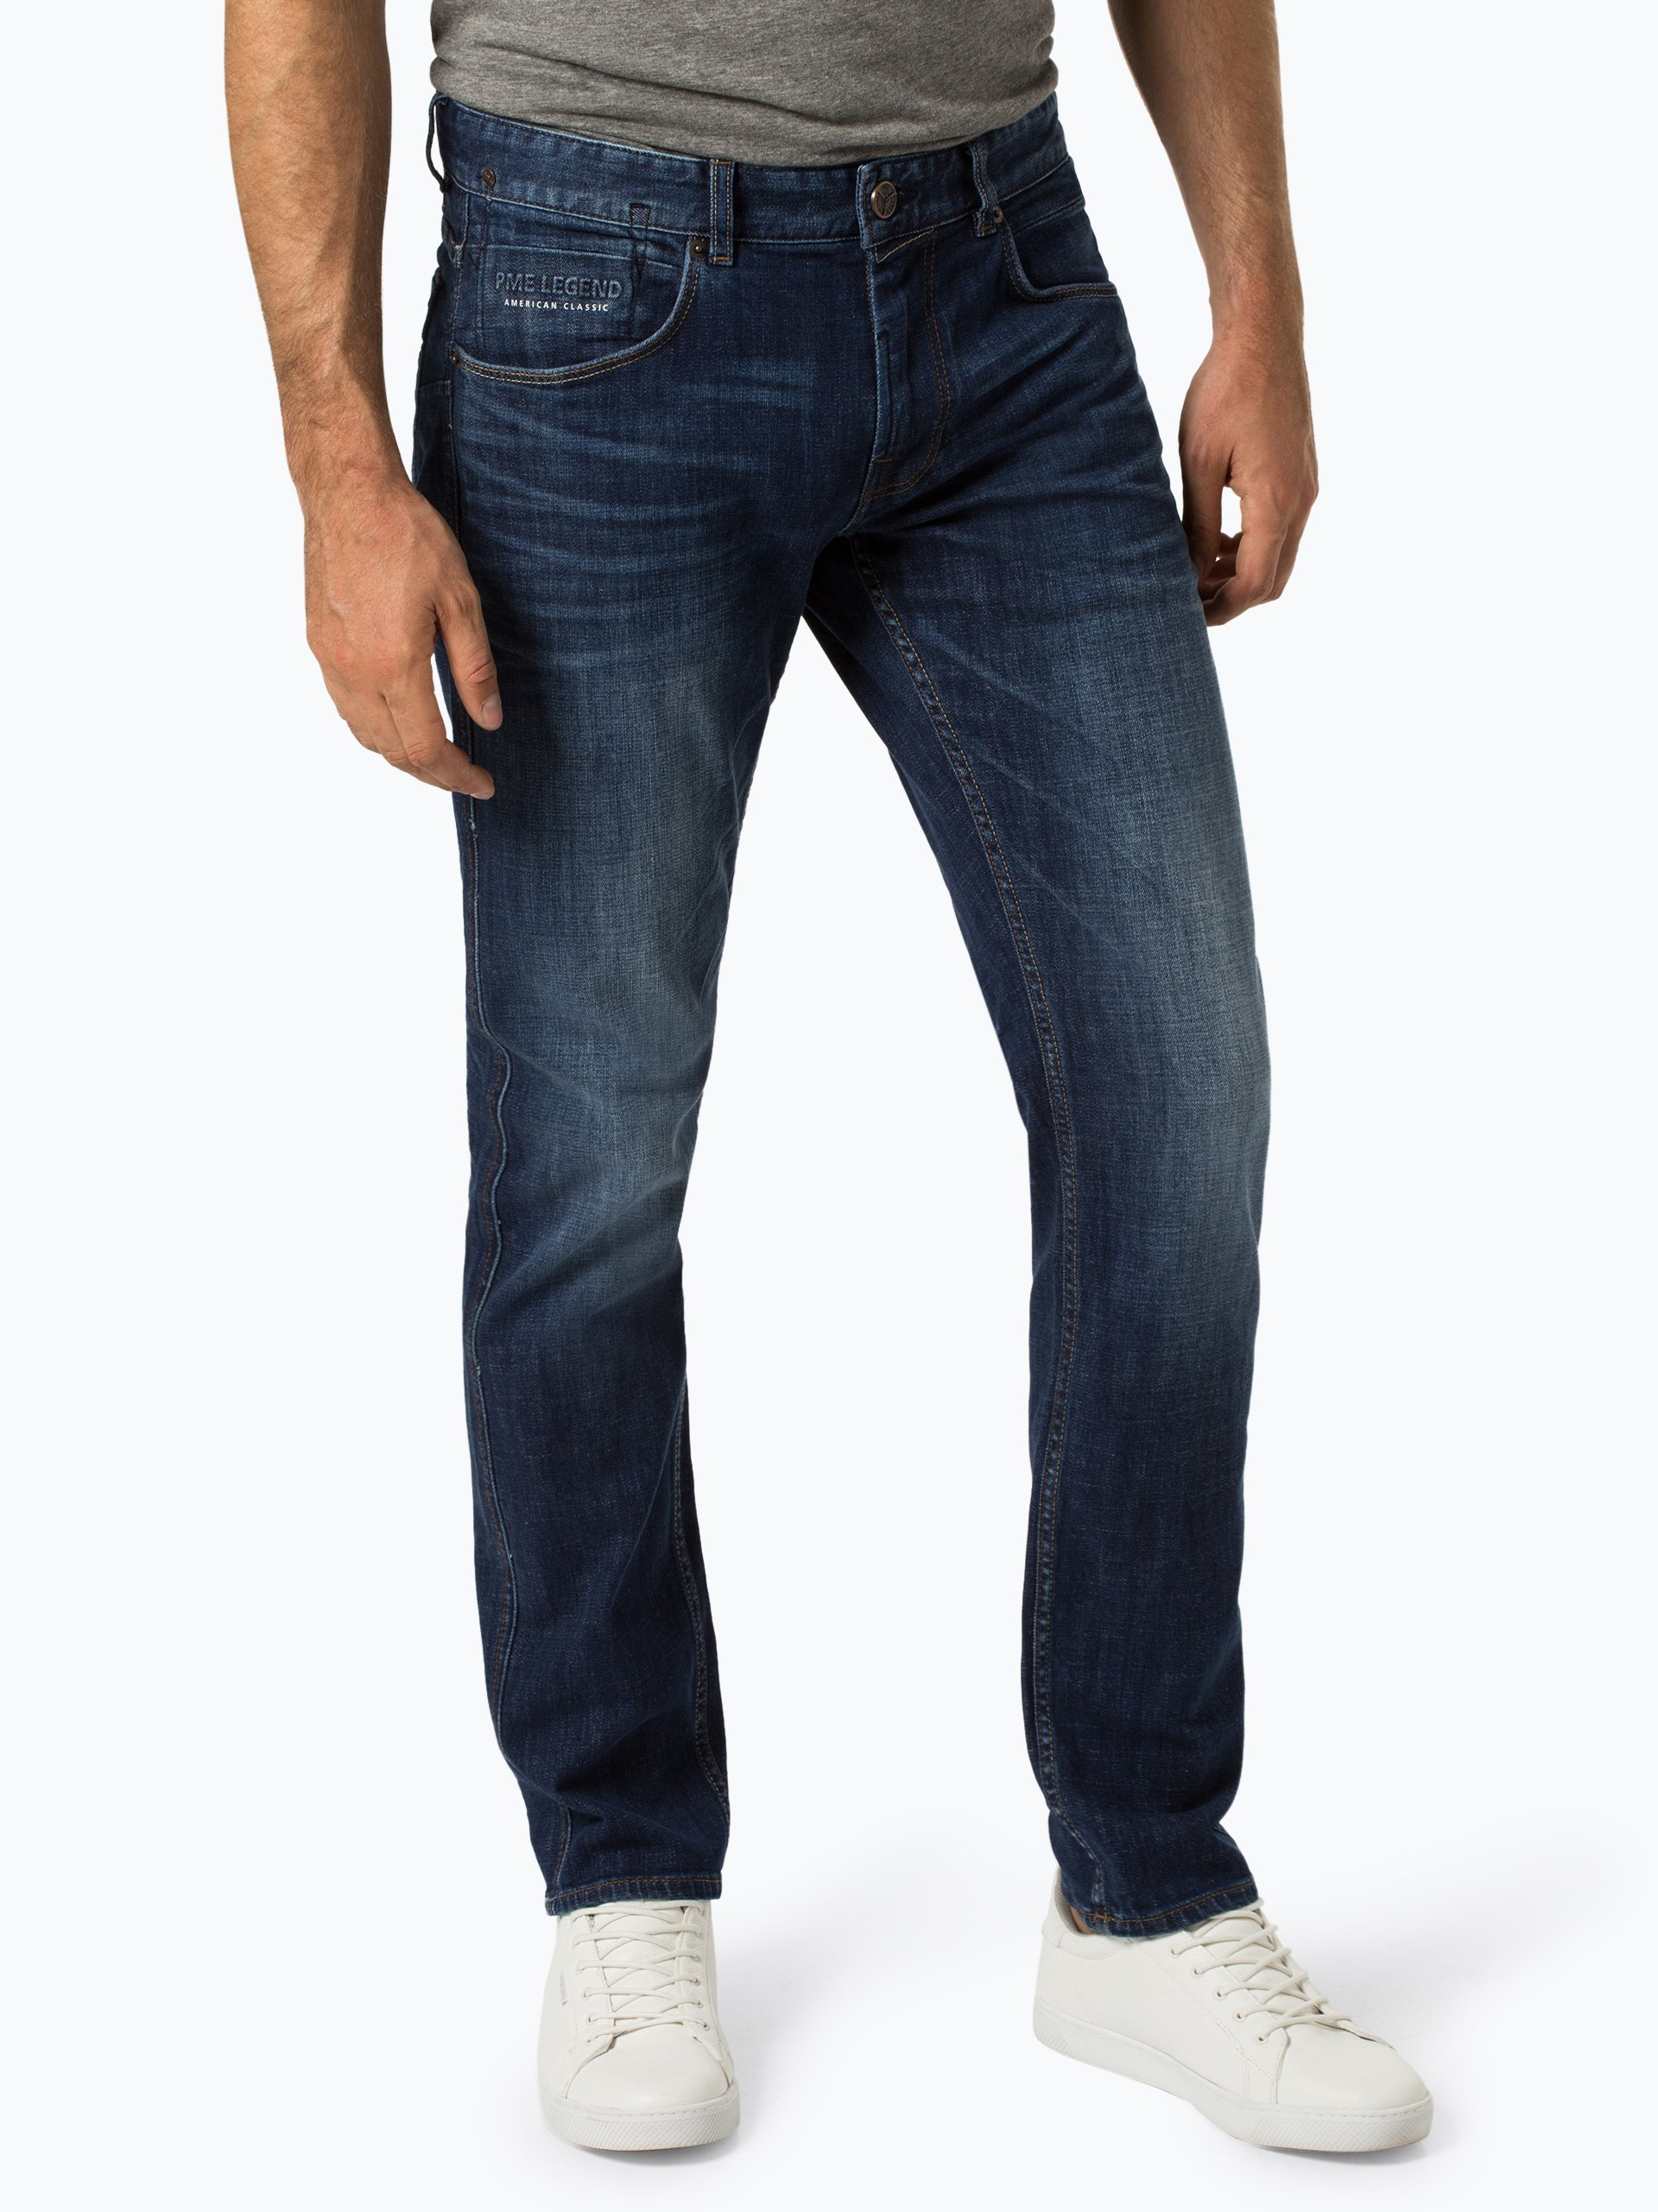 PME Legend Herren Jeans - Nightflight